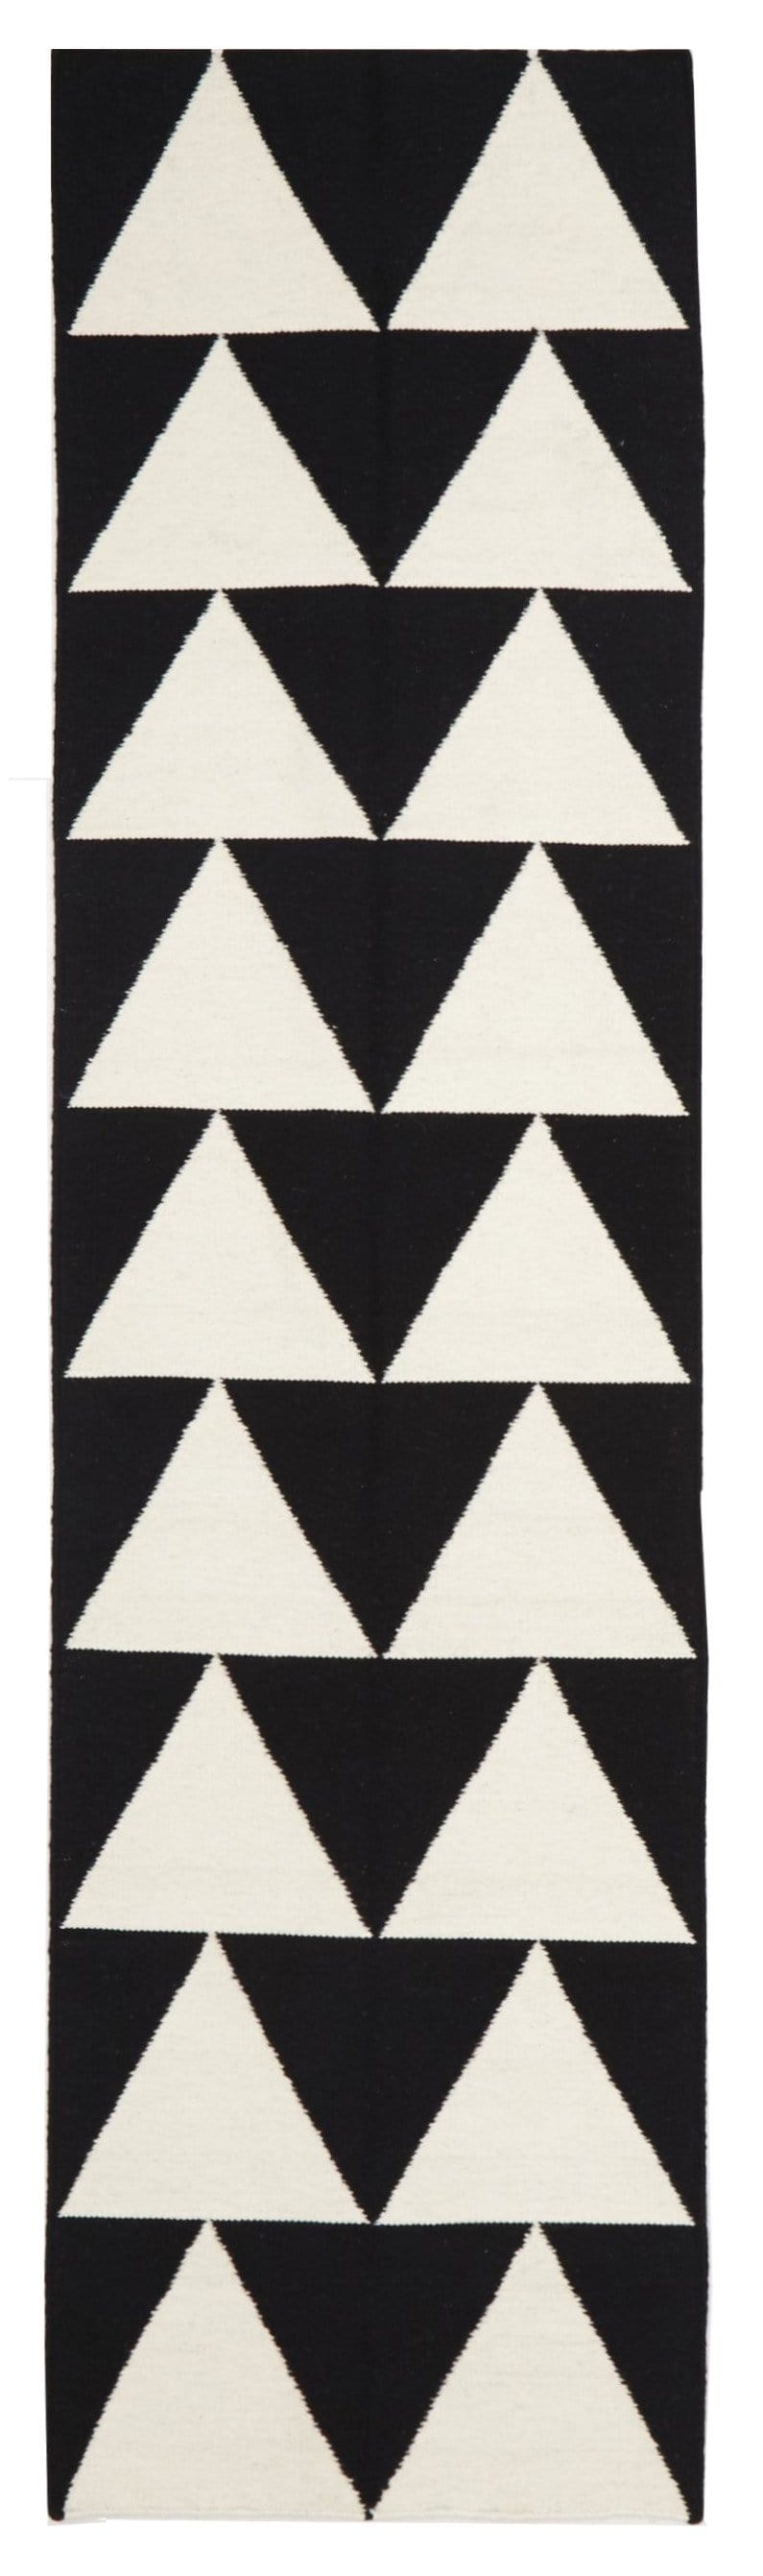 Helsinki Black & White Triangle Flatweave Runner Rug